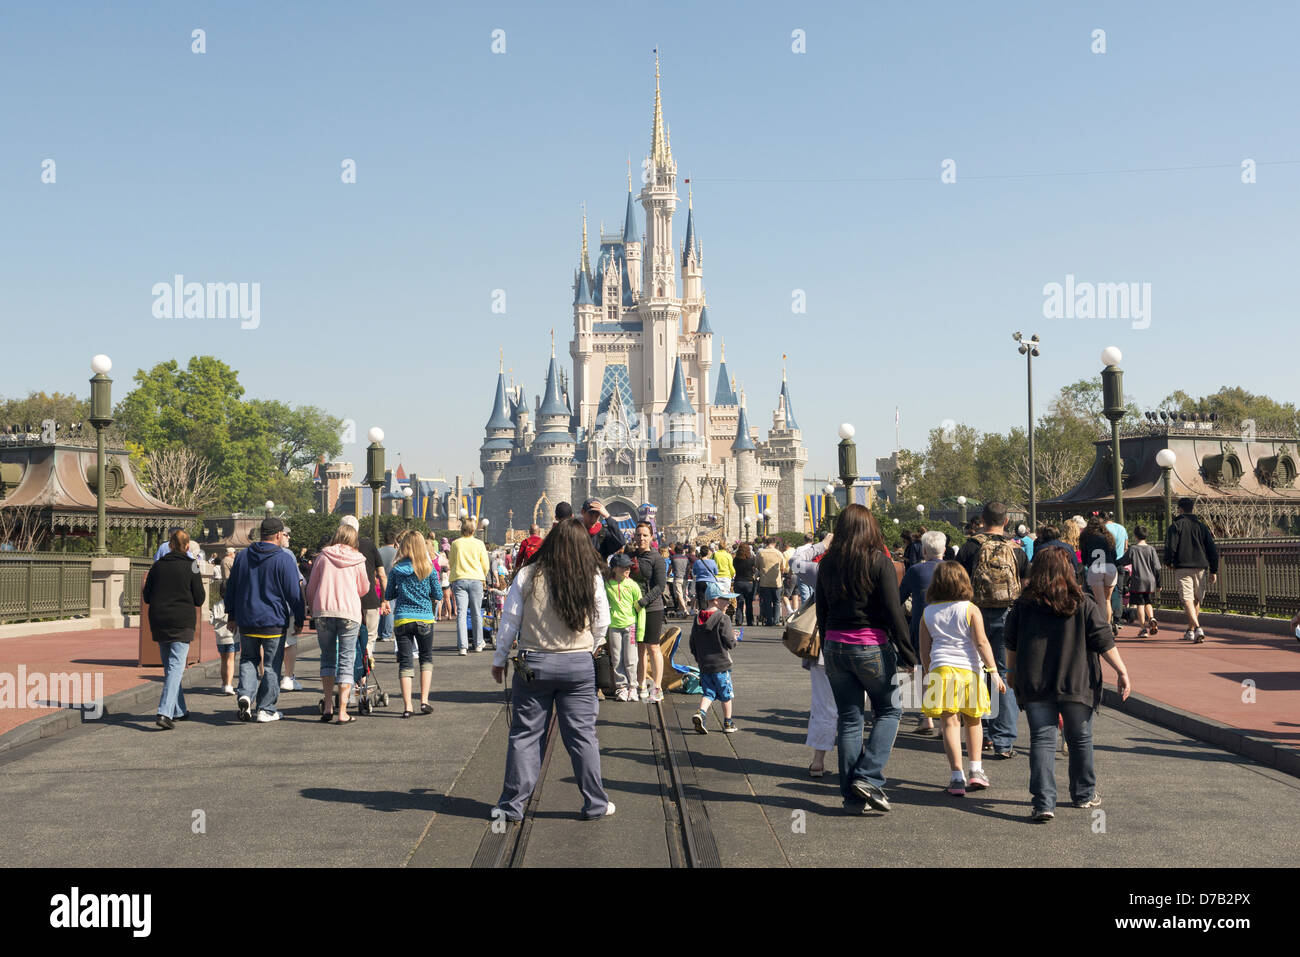 magic kingdom park walt disney world resort orlando